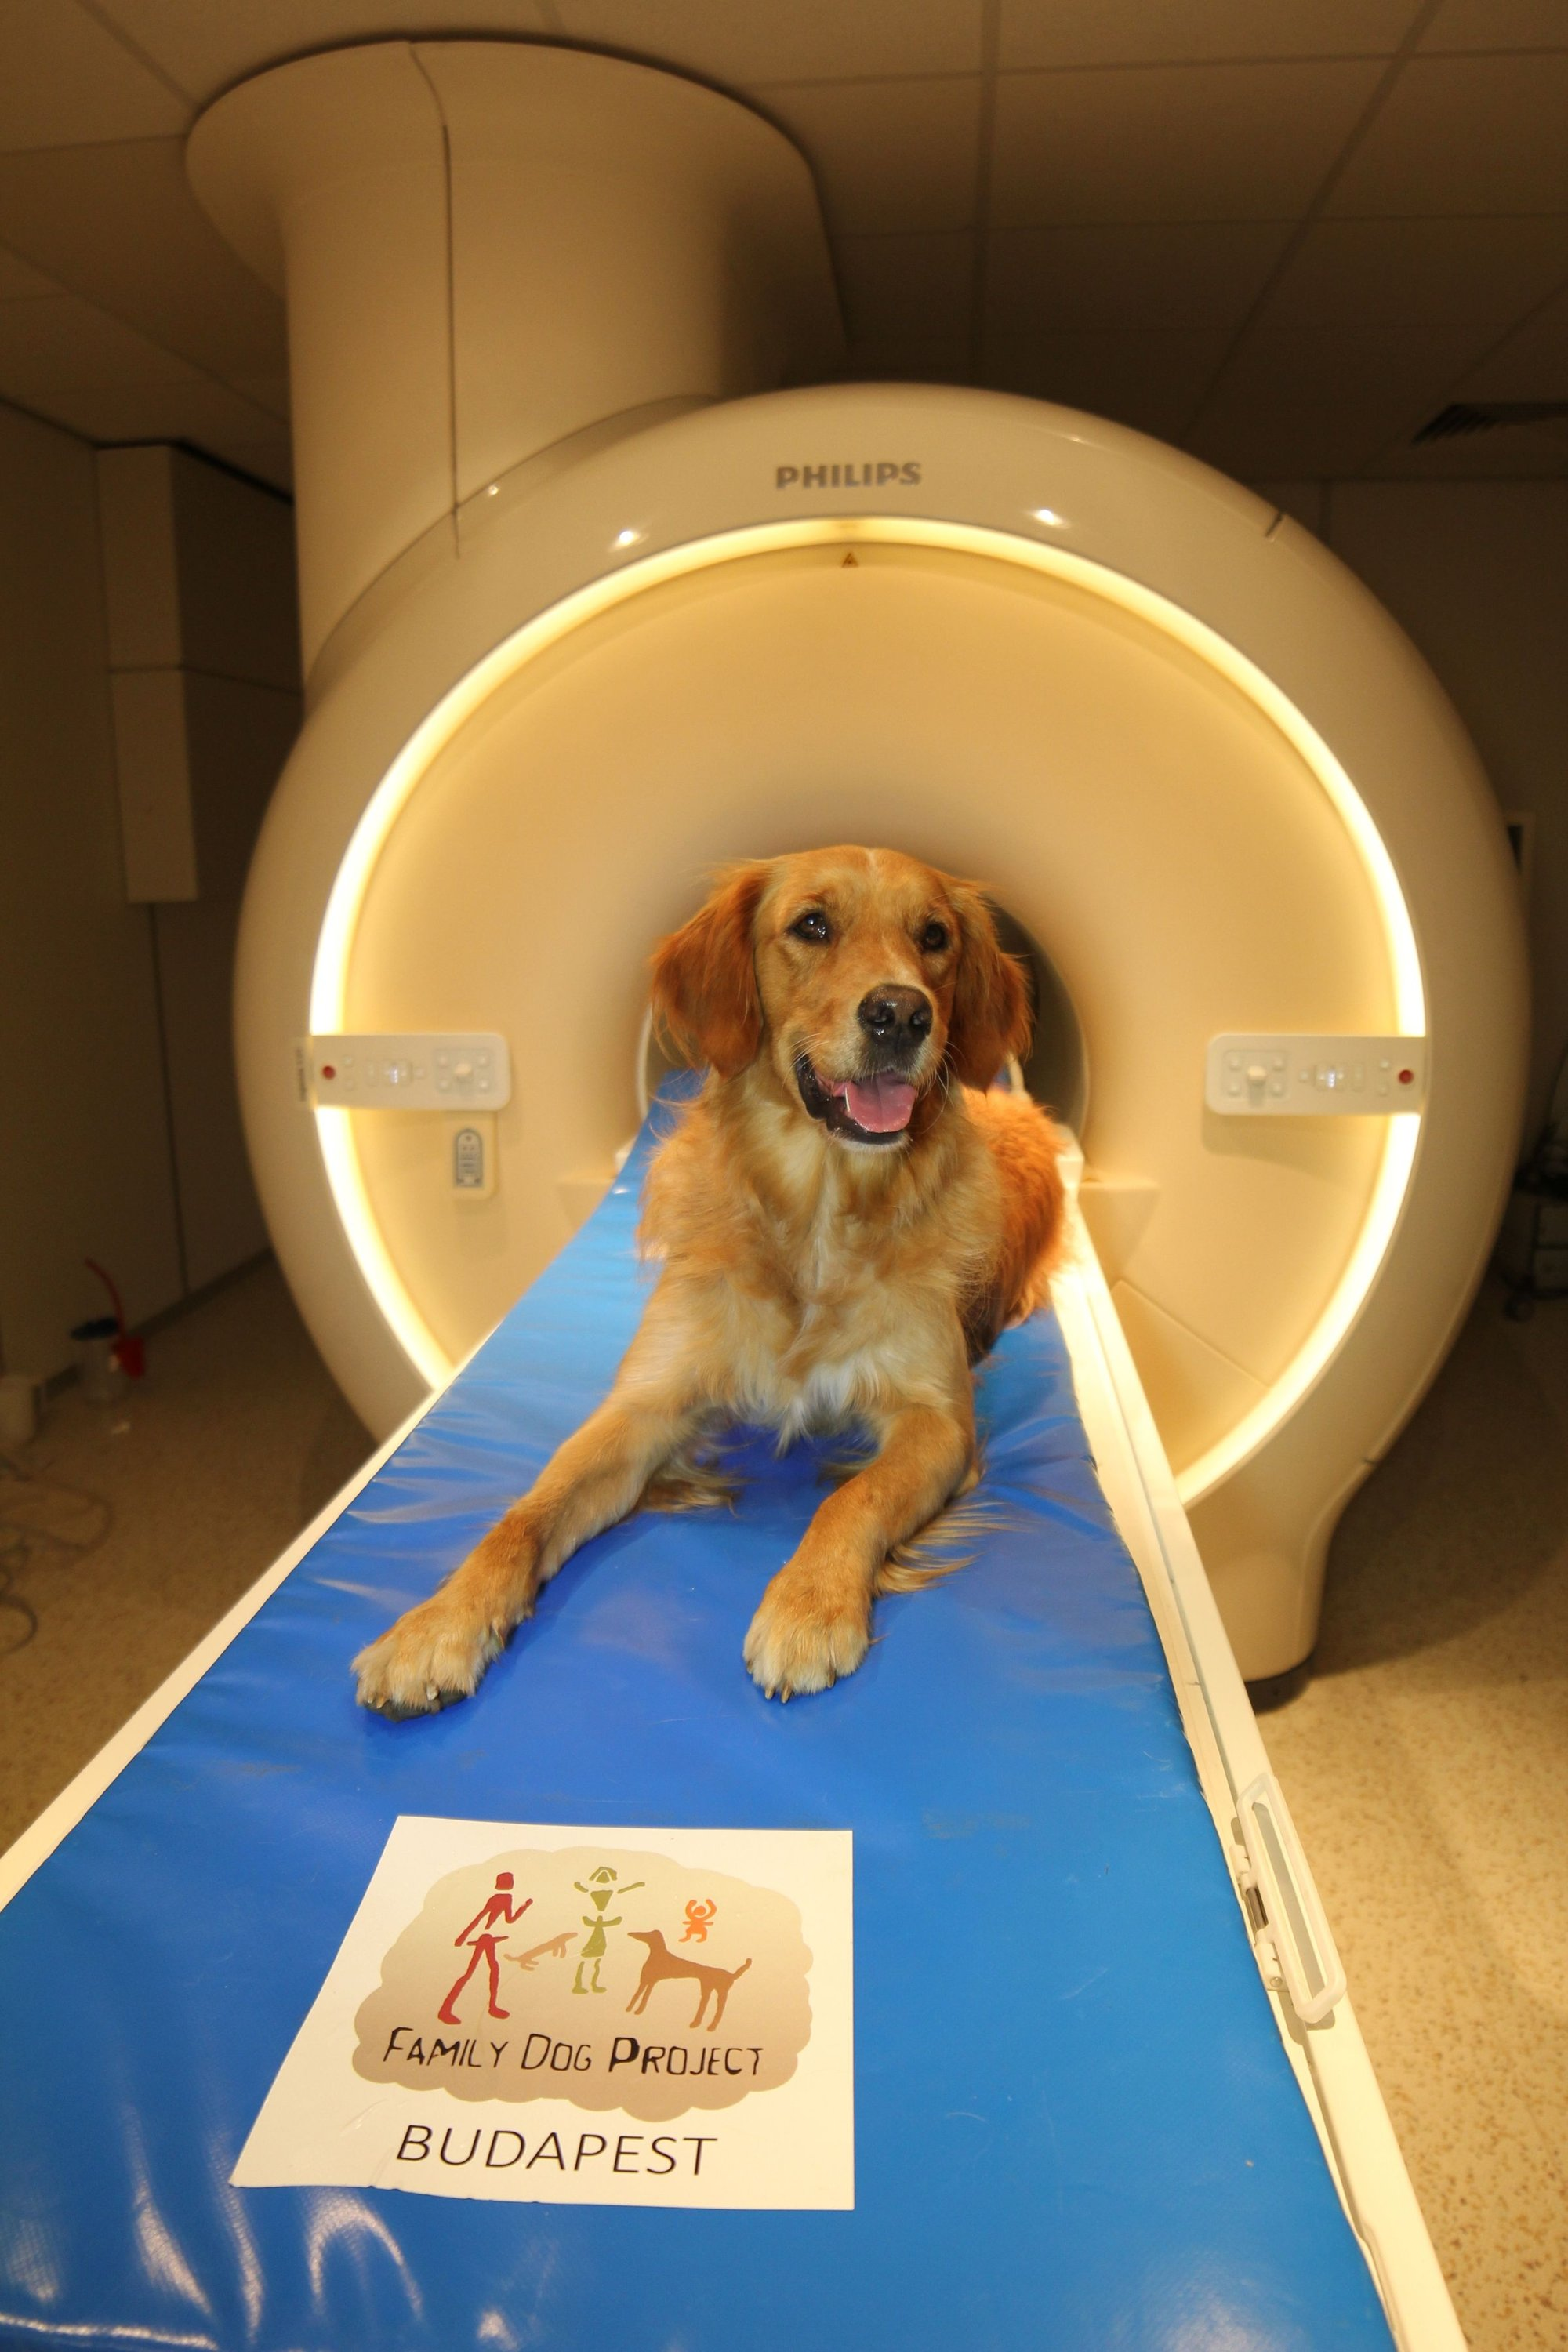 A local dog waits for an examination at an MR scanner at Eotvos Lorand University in Budapest, Hungary, Aug. 24, 2016. (AFP Photo)